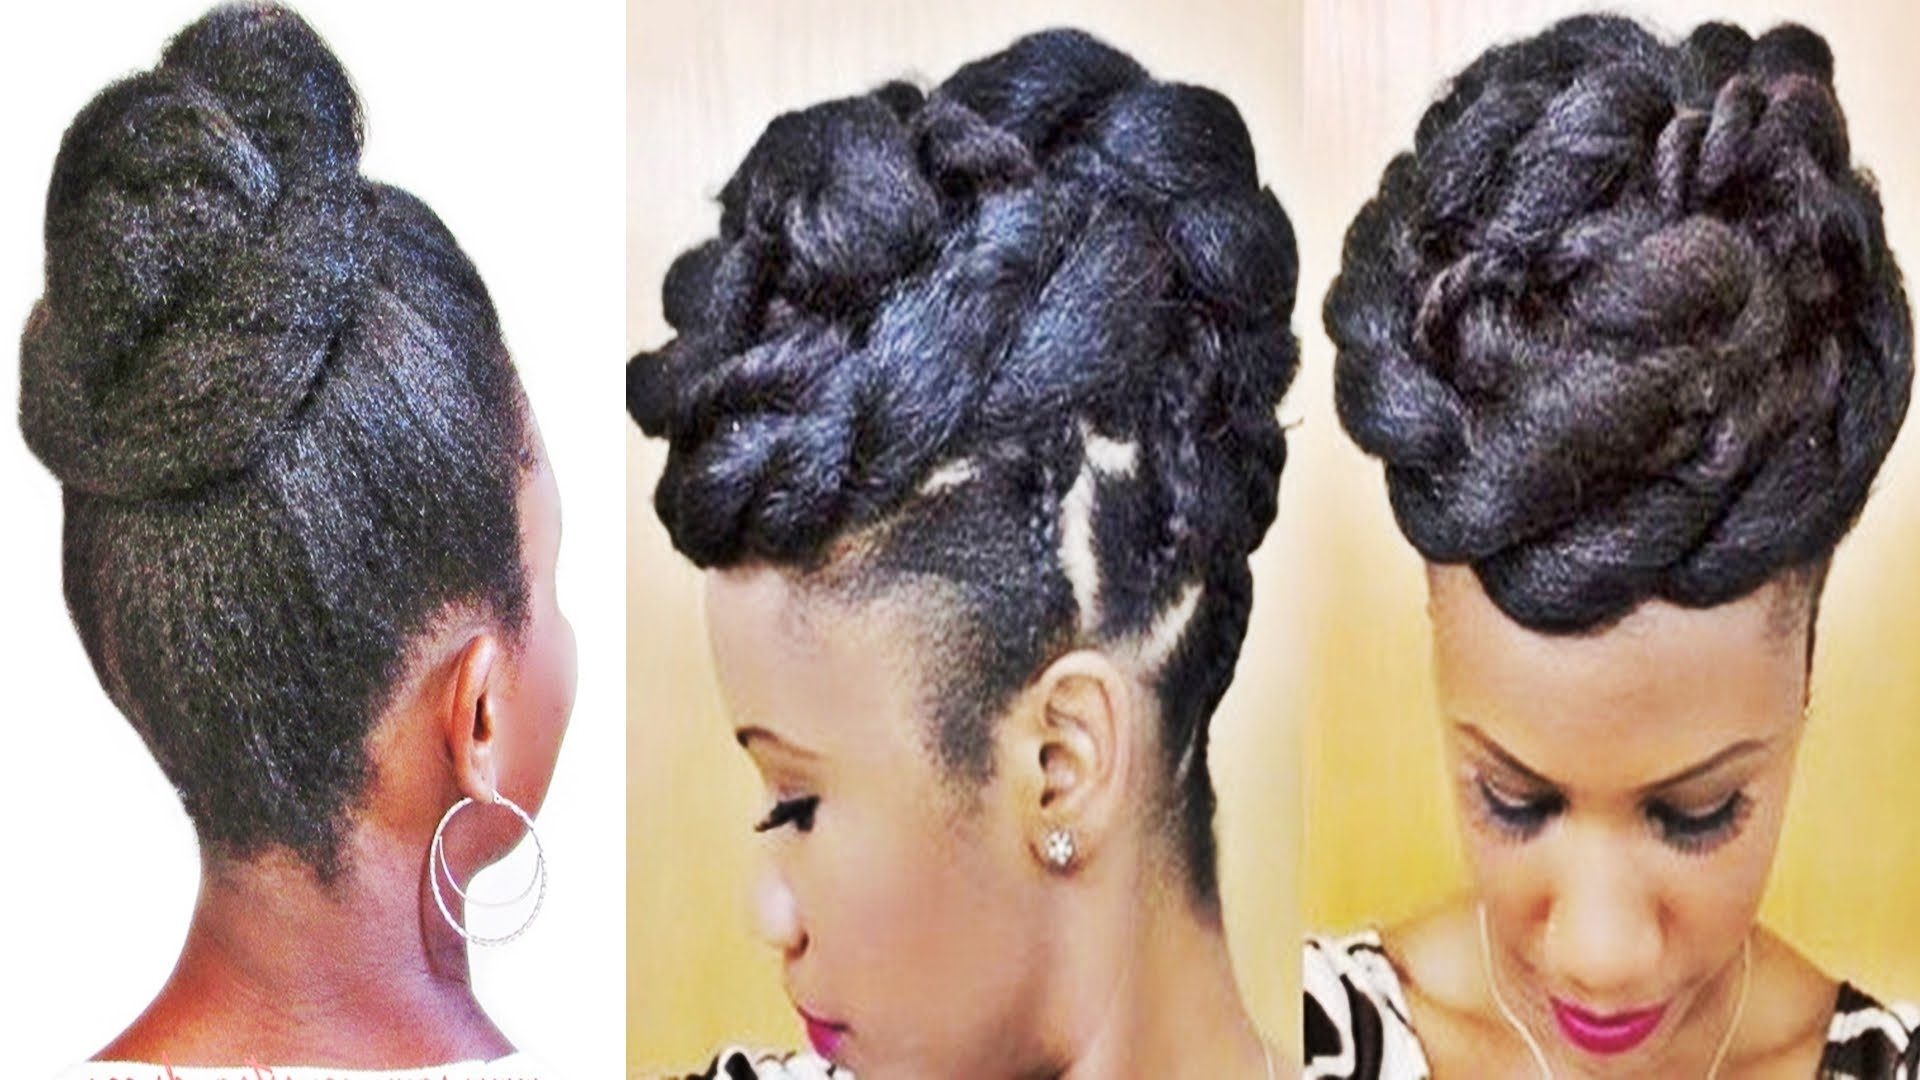 Braids And Twists Updo Hairstyle For Black Women – Youtube For Jumbo Twist Updo Hairstyles (View 3 of 15)